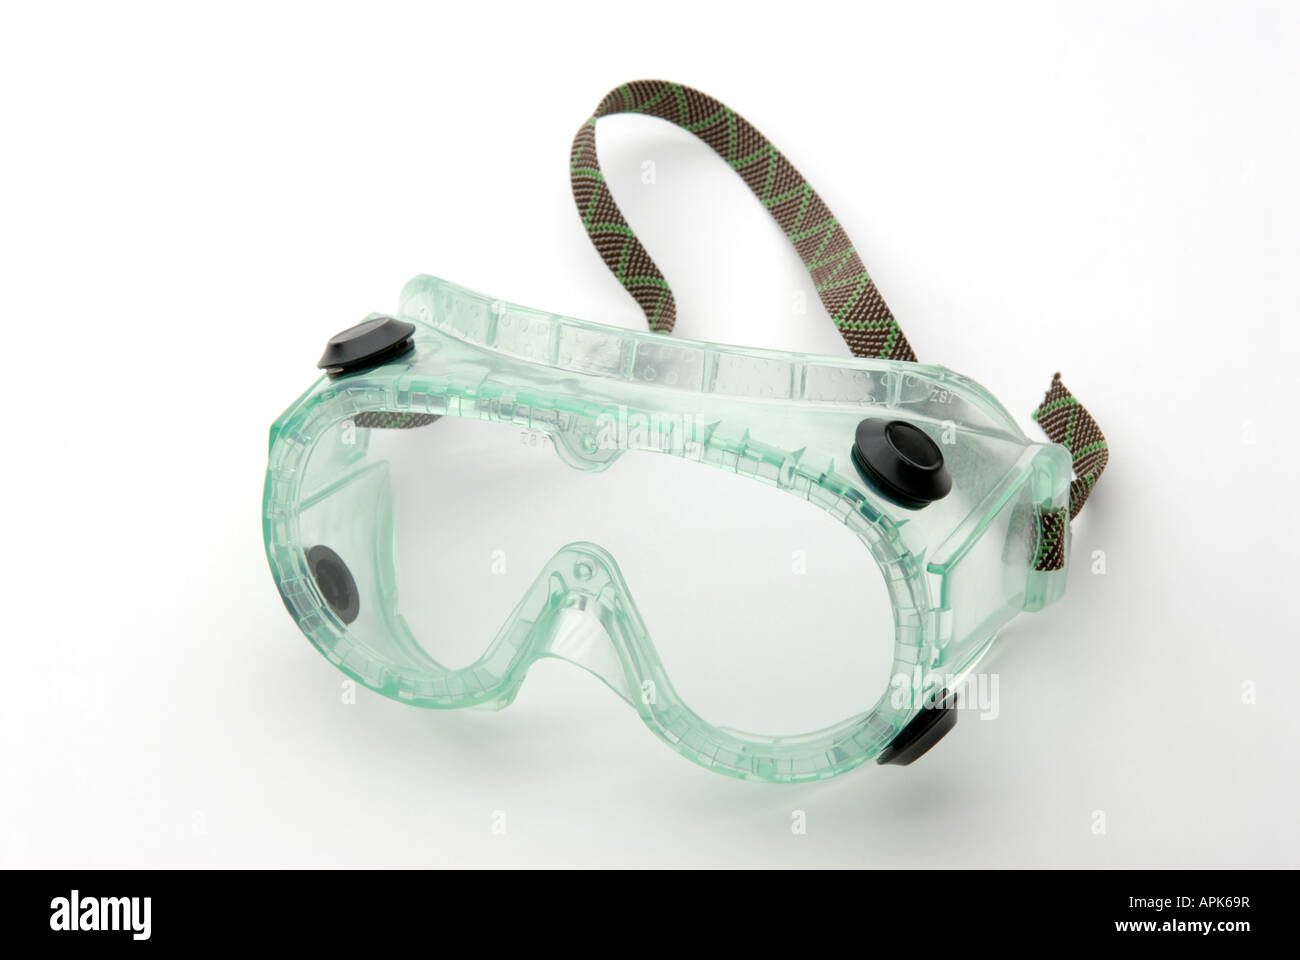 Splash proof chemical safety goggles for use in research labs and science courses - Stock Image